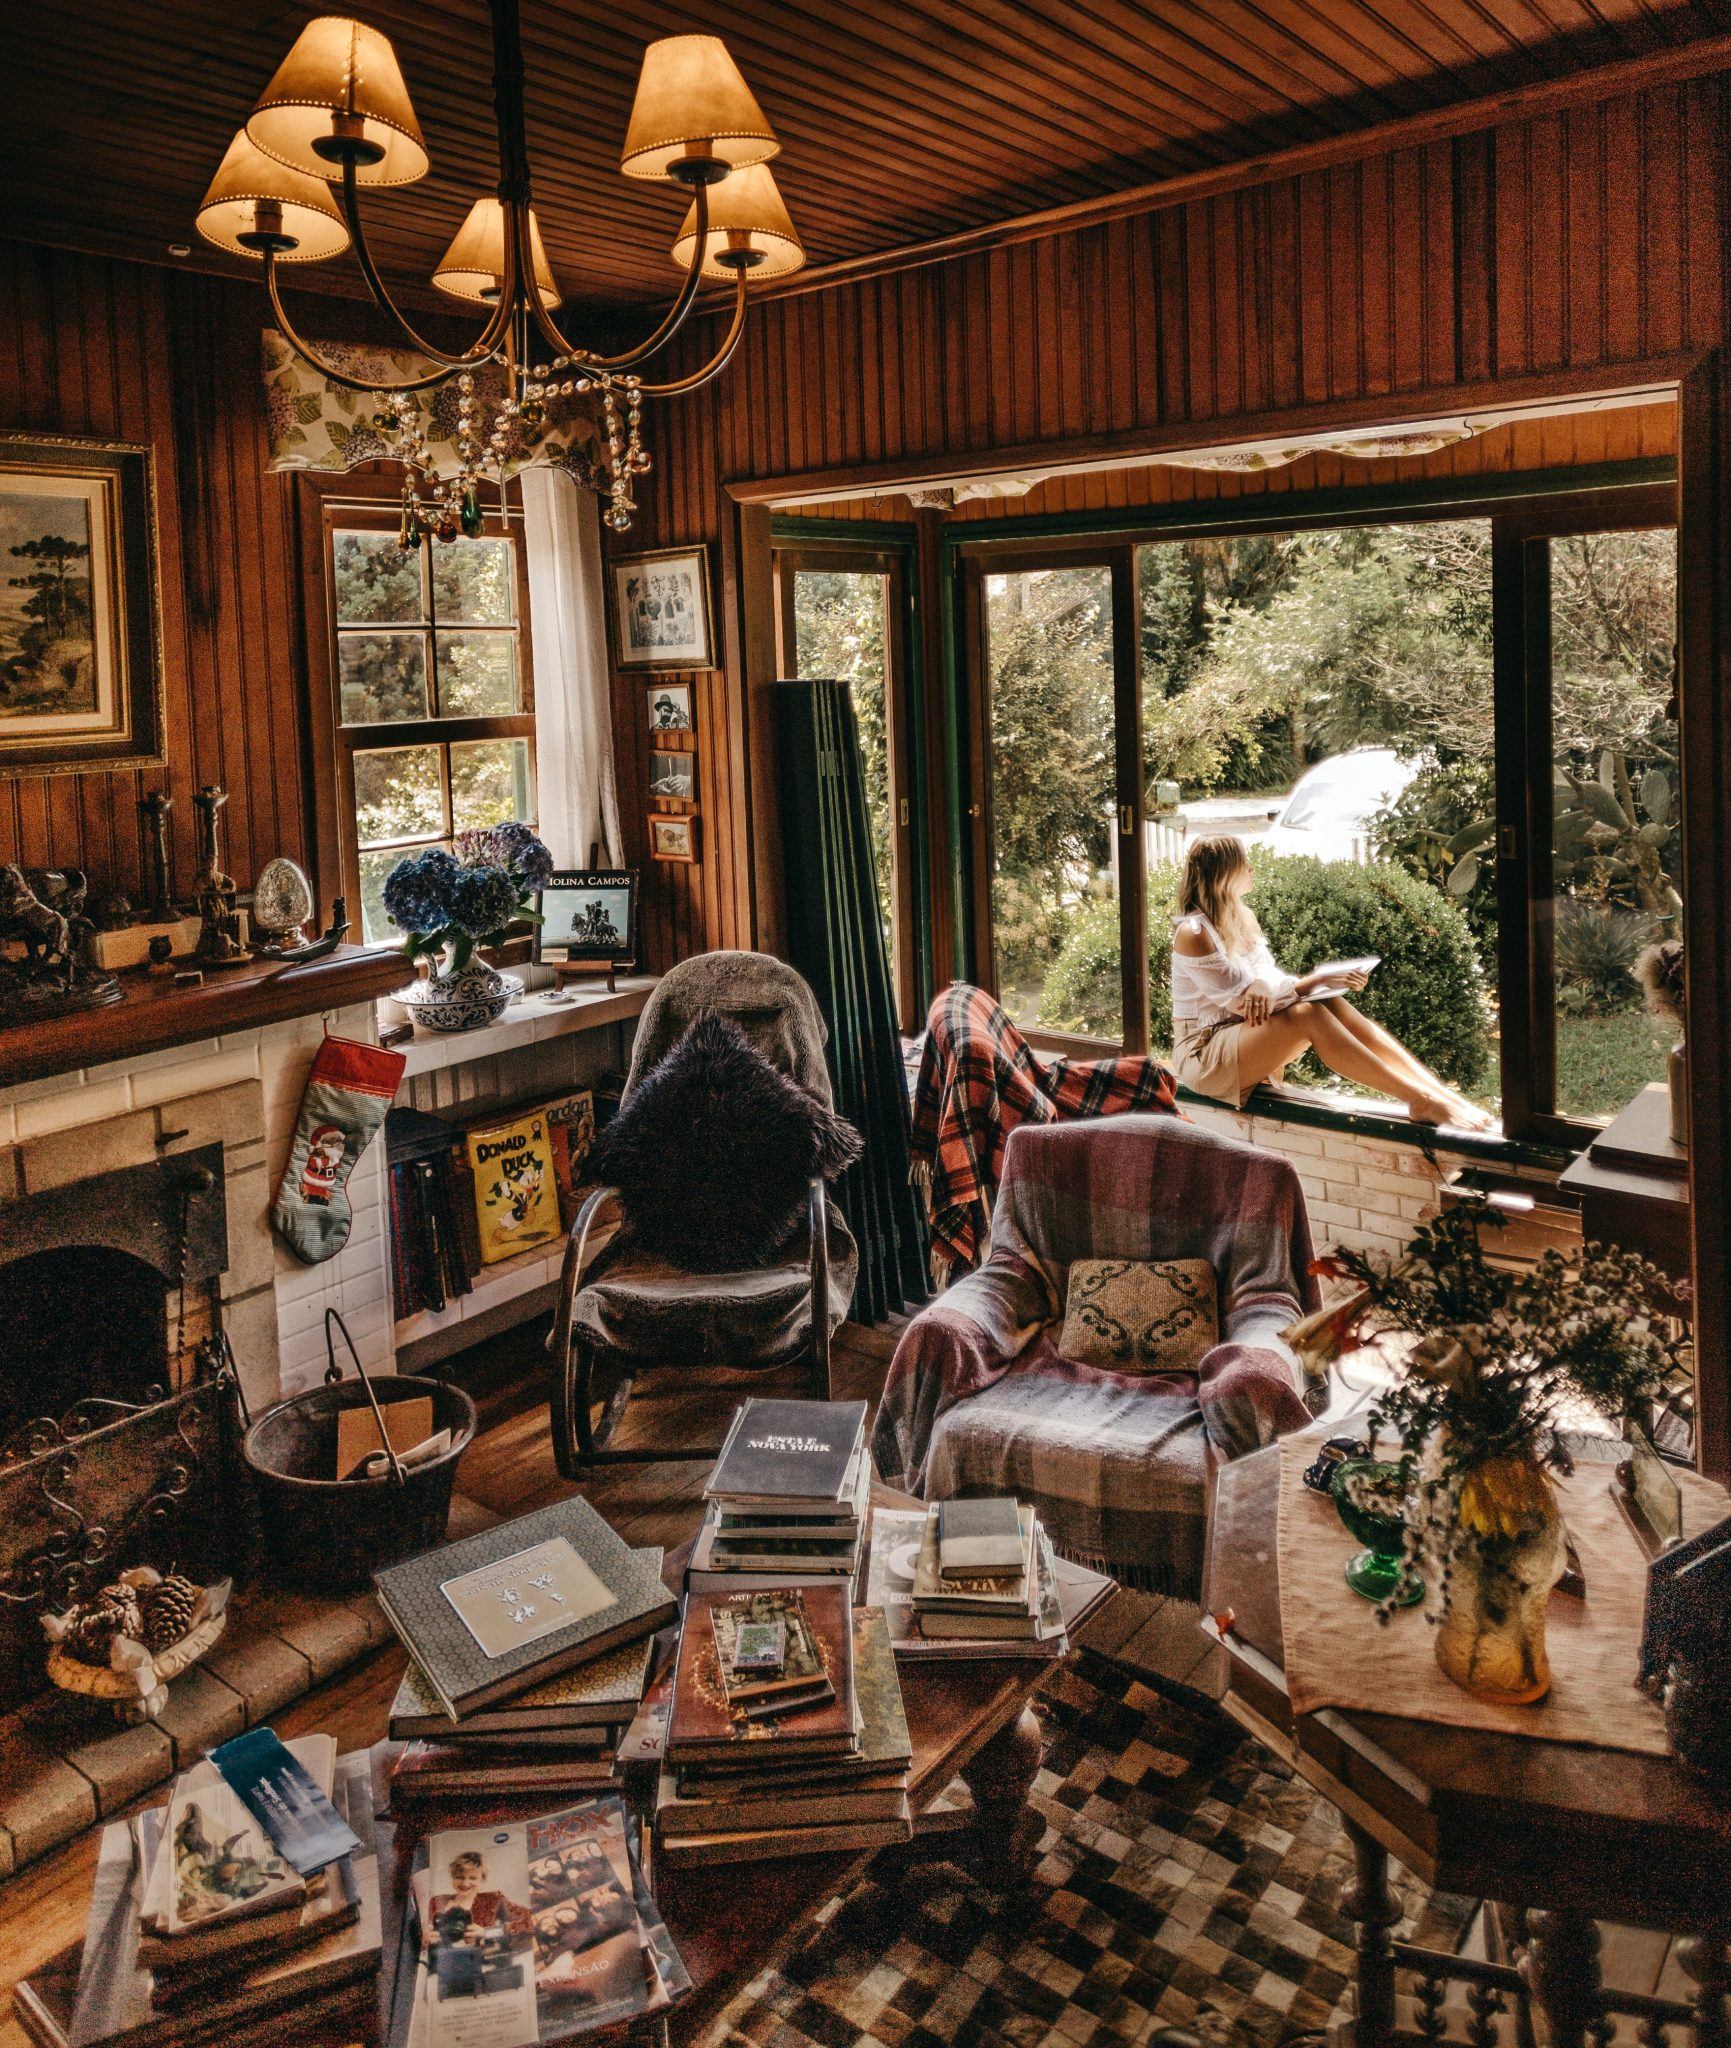 Cluttered-living-room-Photo-by-jonathan-borba-on-unsplash